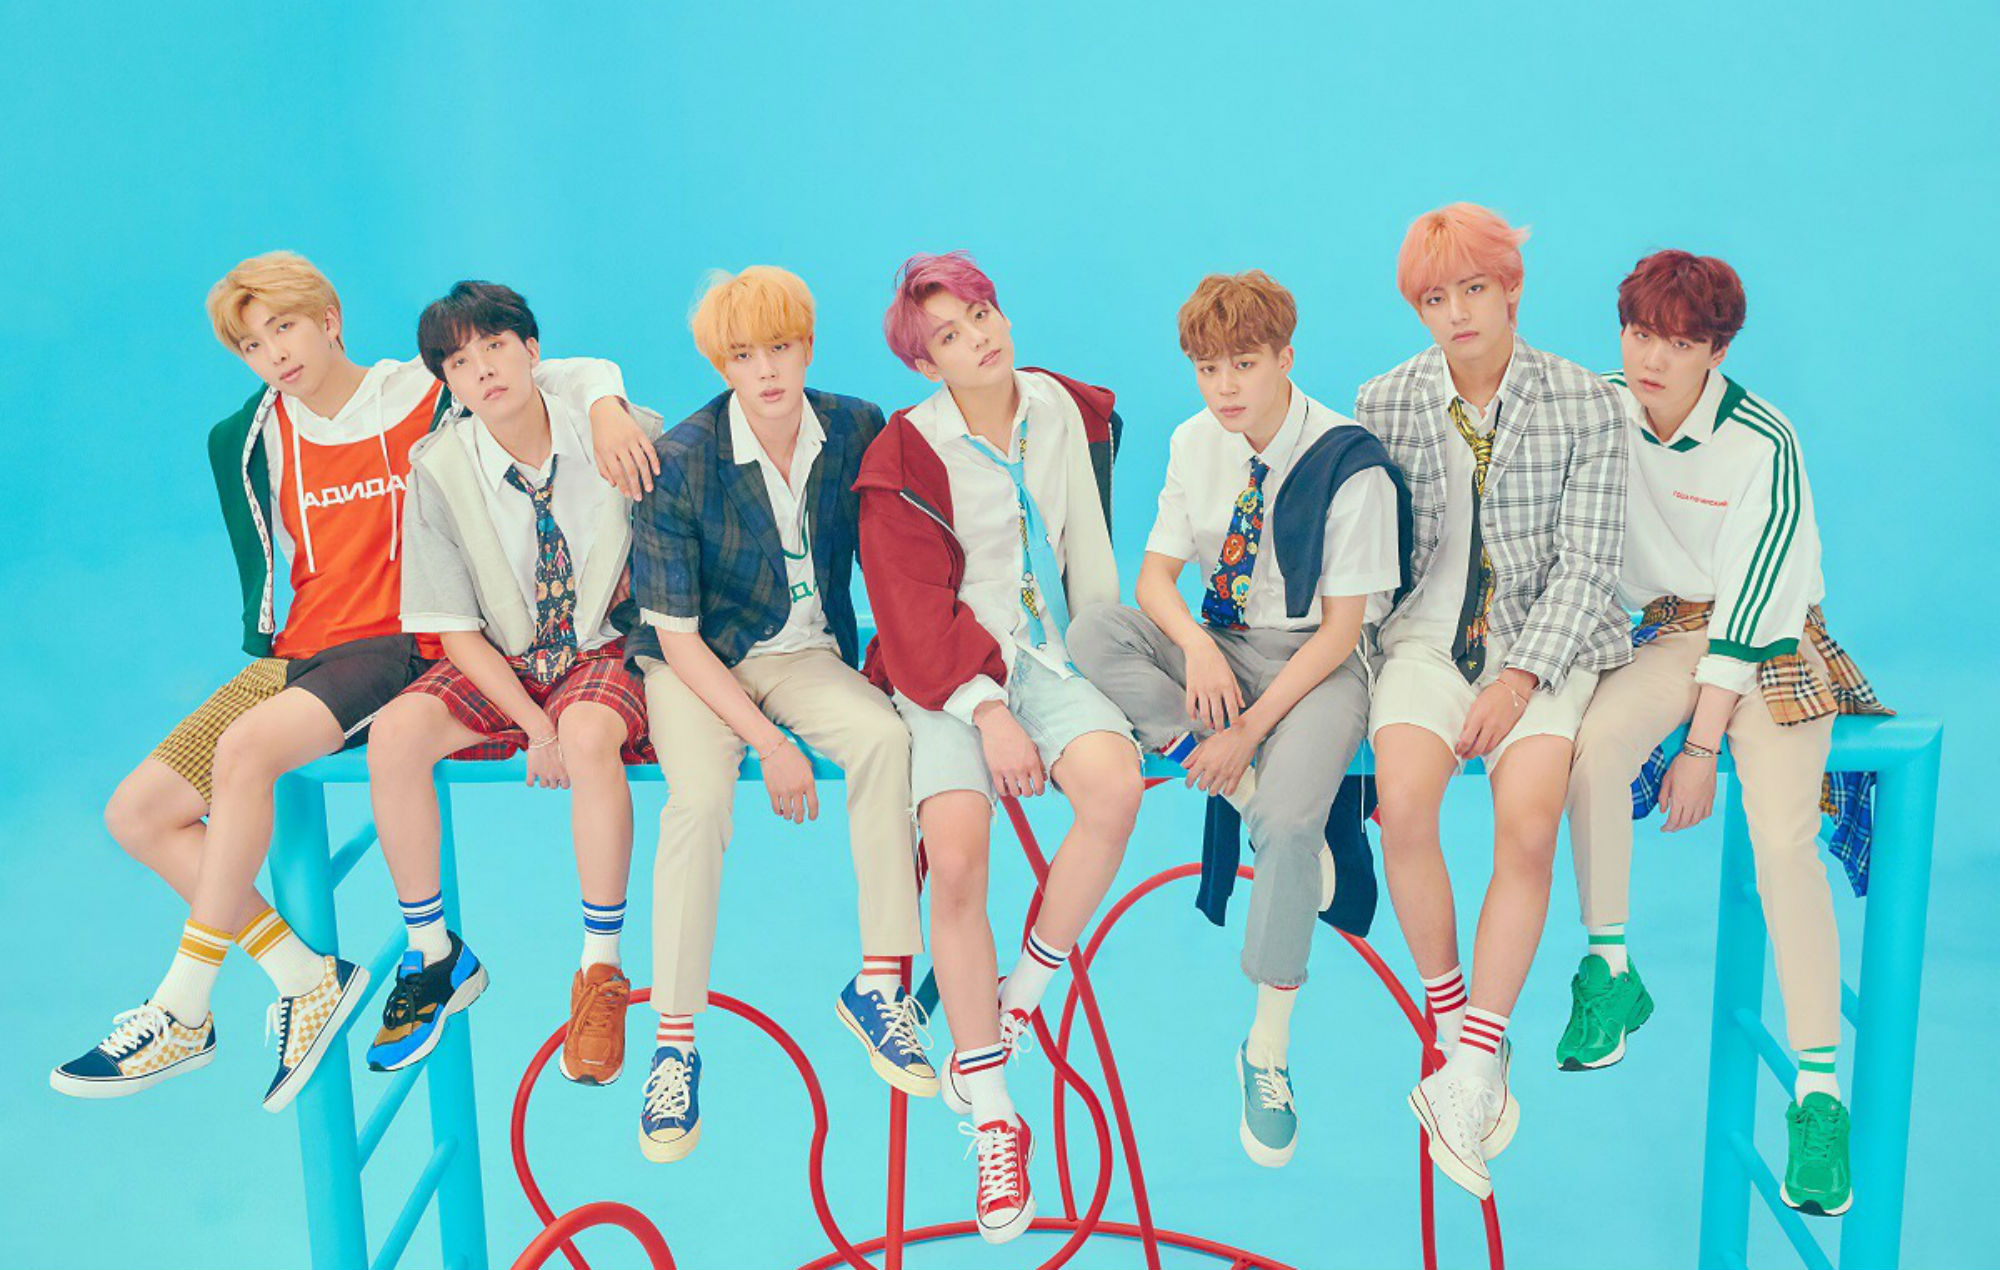 BTS to perform with Halsey at 2019 Billboard Music Awards